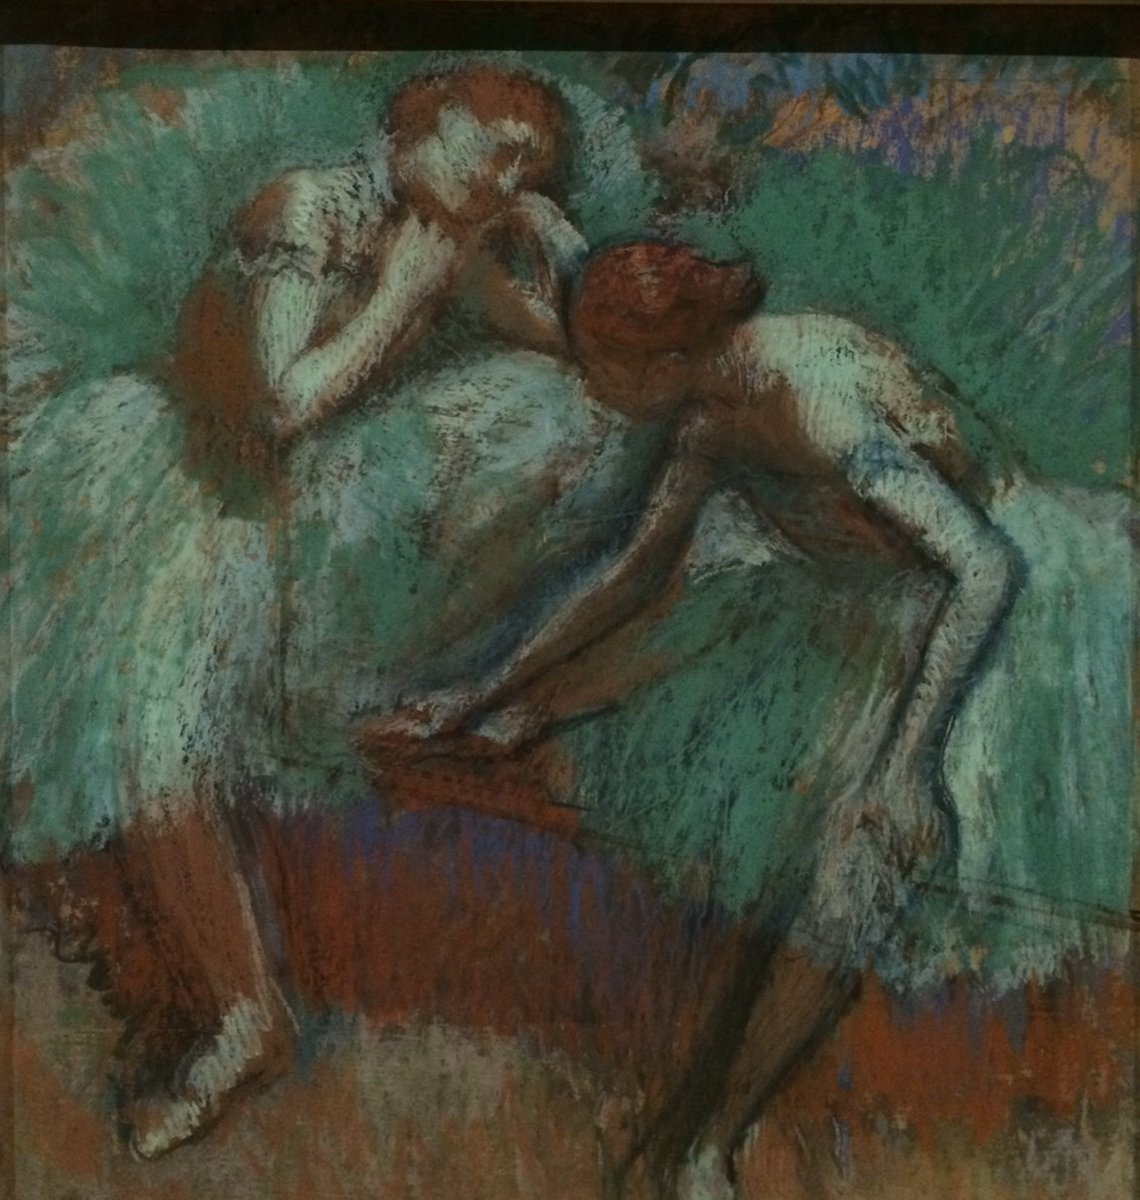 A new exhibit at @MuseumModernArt explores the work of Edgar Degas: https://t.co/vErV7yu573 https://t.co/h74k3DNDWD